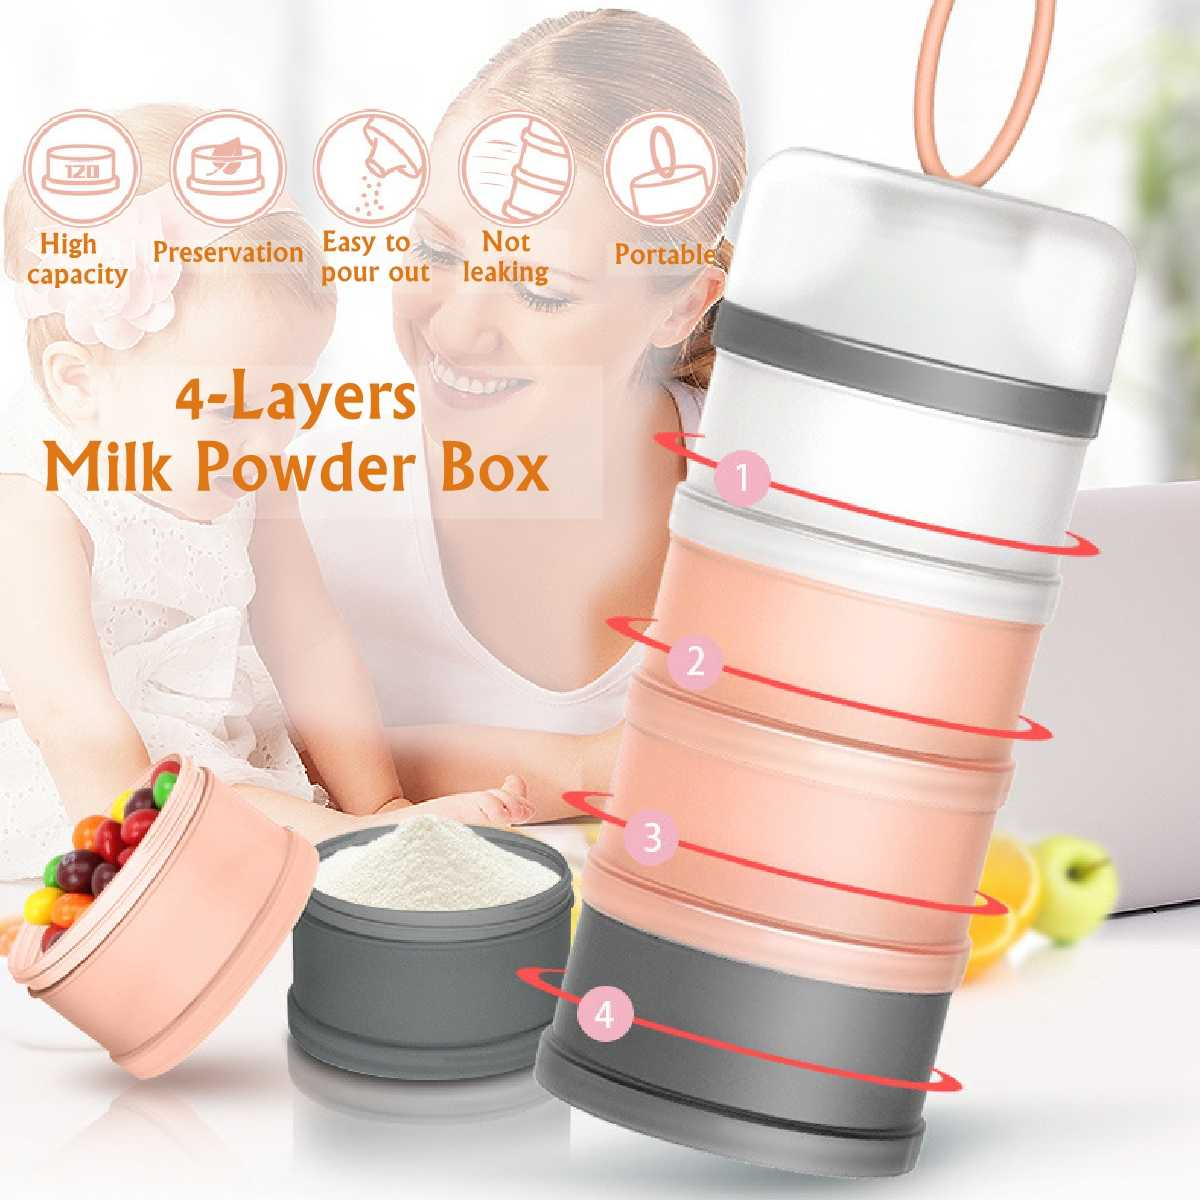 4 Layer 18.5cm Detachable Baby Food Storage Box 480ml Essential Cereal Milk Powder Boxes Portable Toddle Kids Milk Container